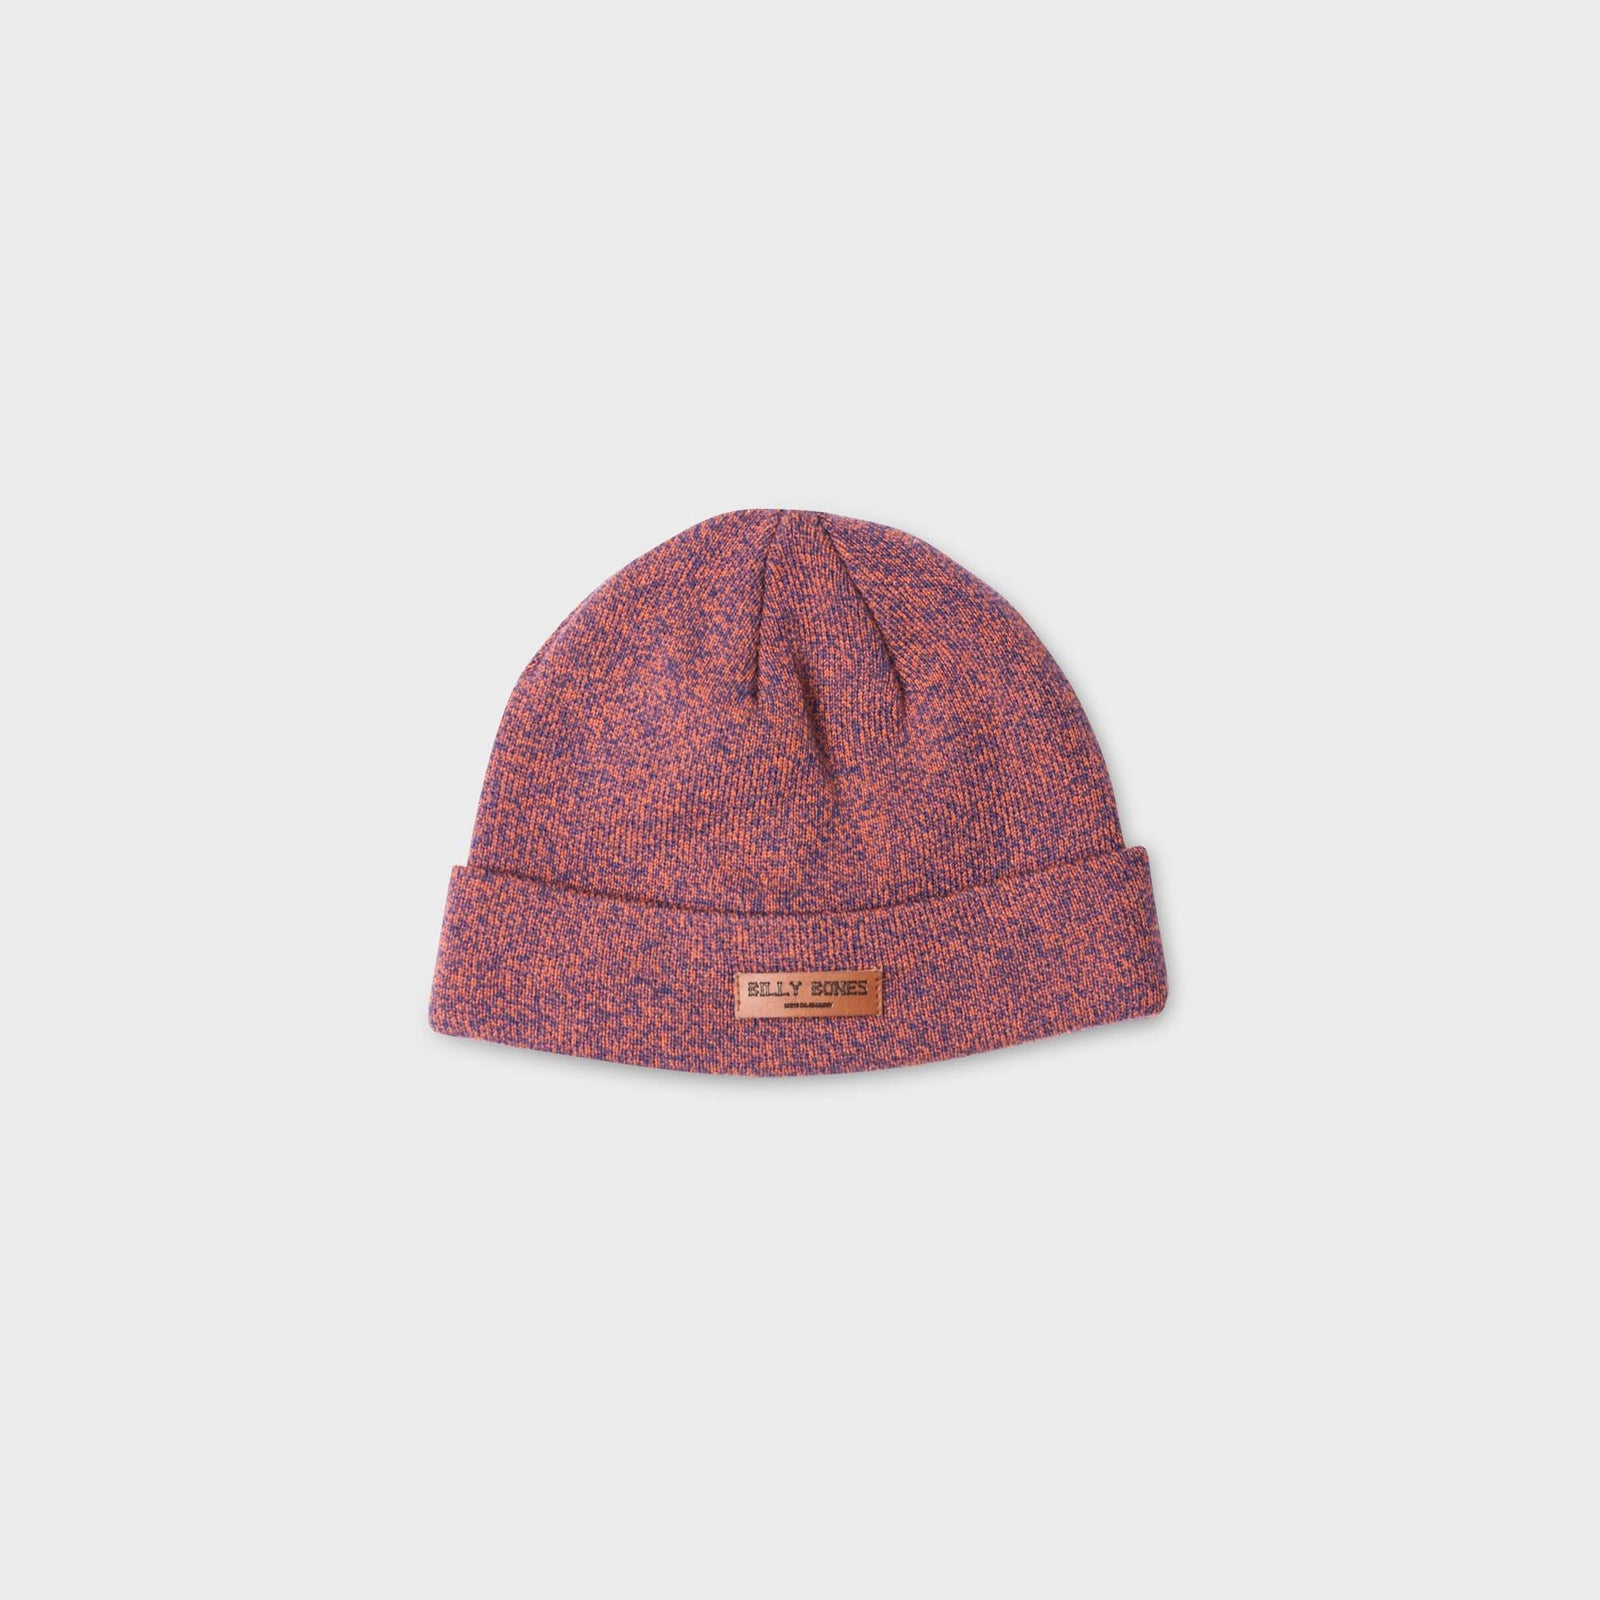 Fairy Bread - Standard Fit Beanie